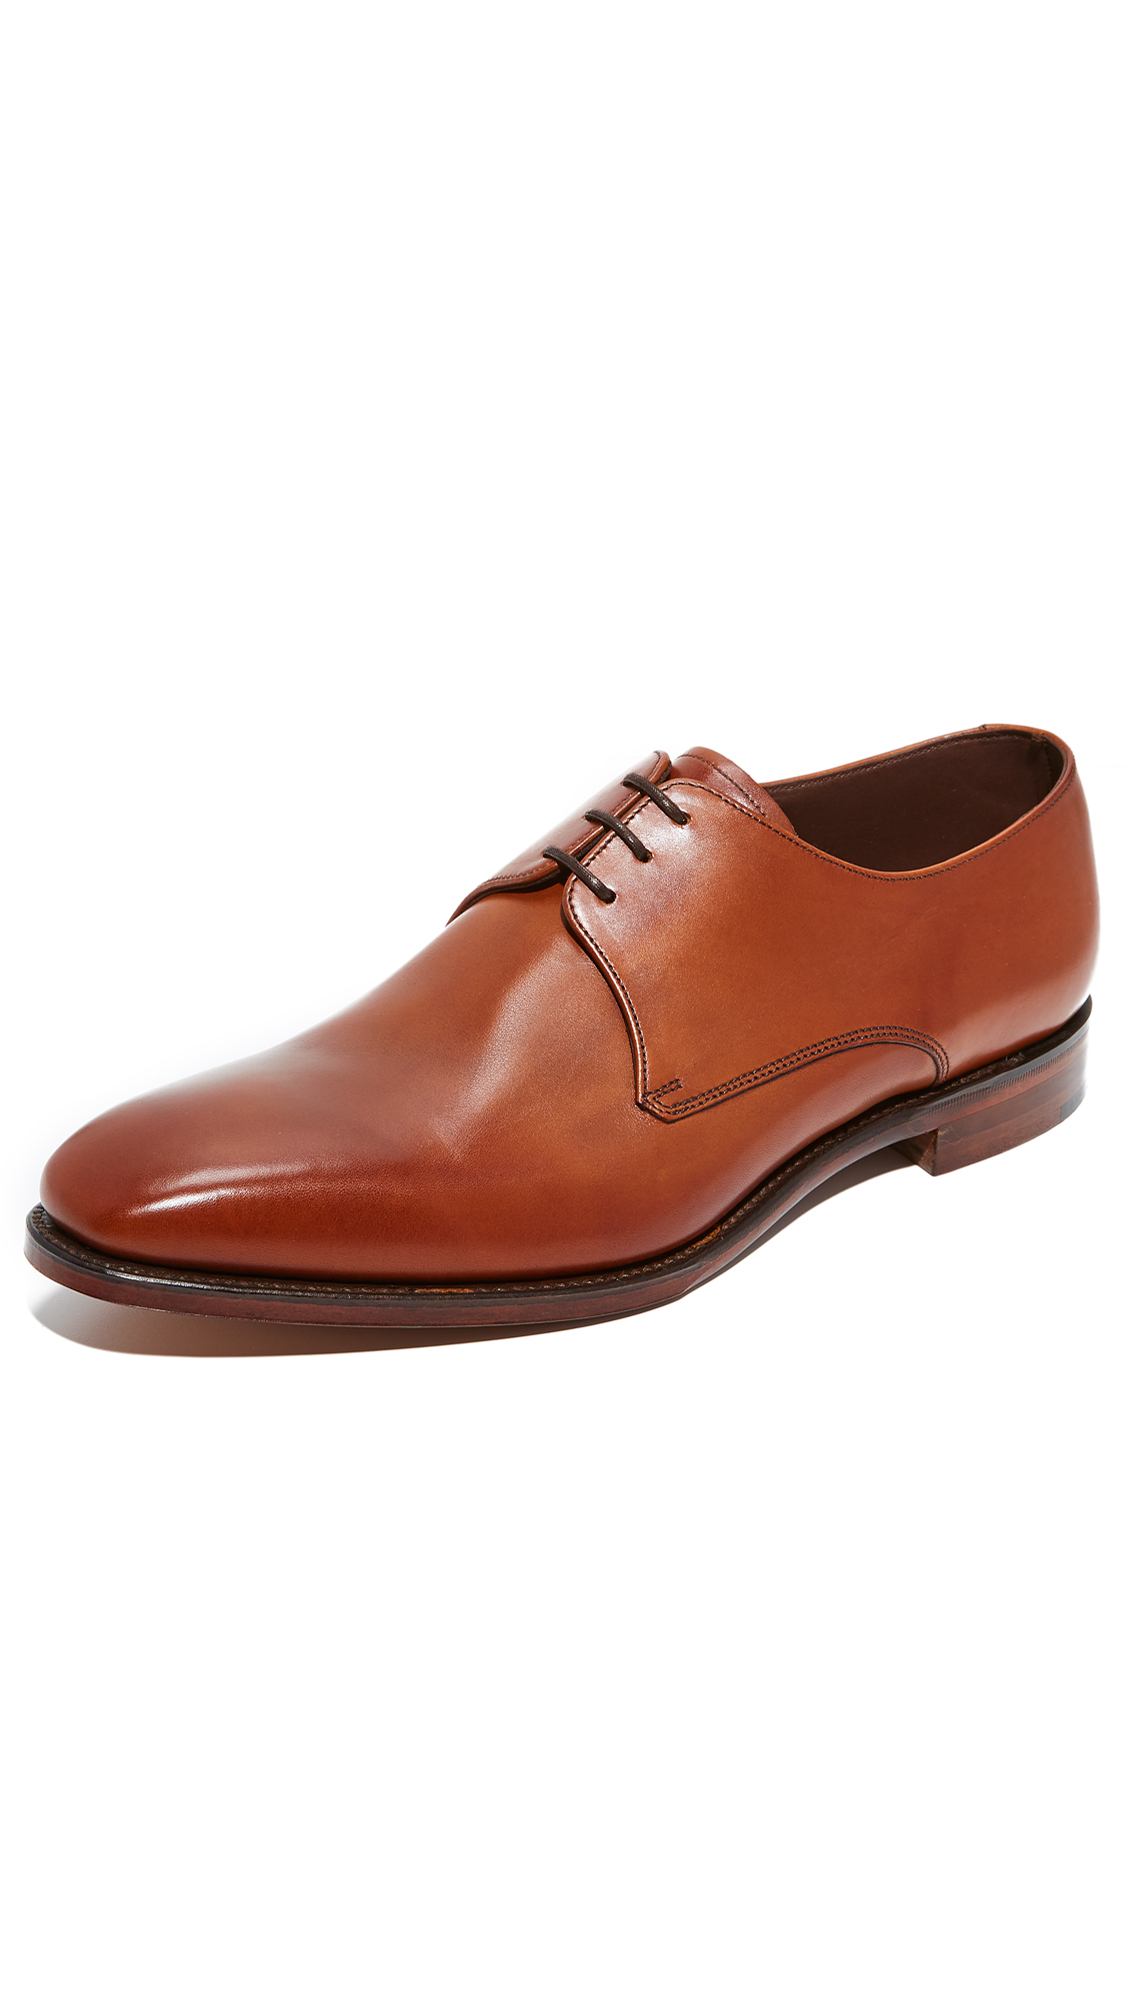 LOAKE 1880 Cornwall Plain Toe Derbys in Mahogany